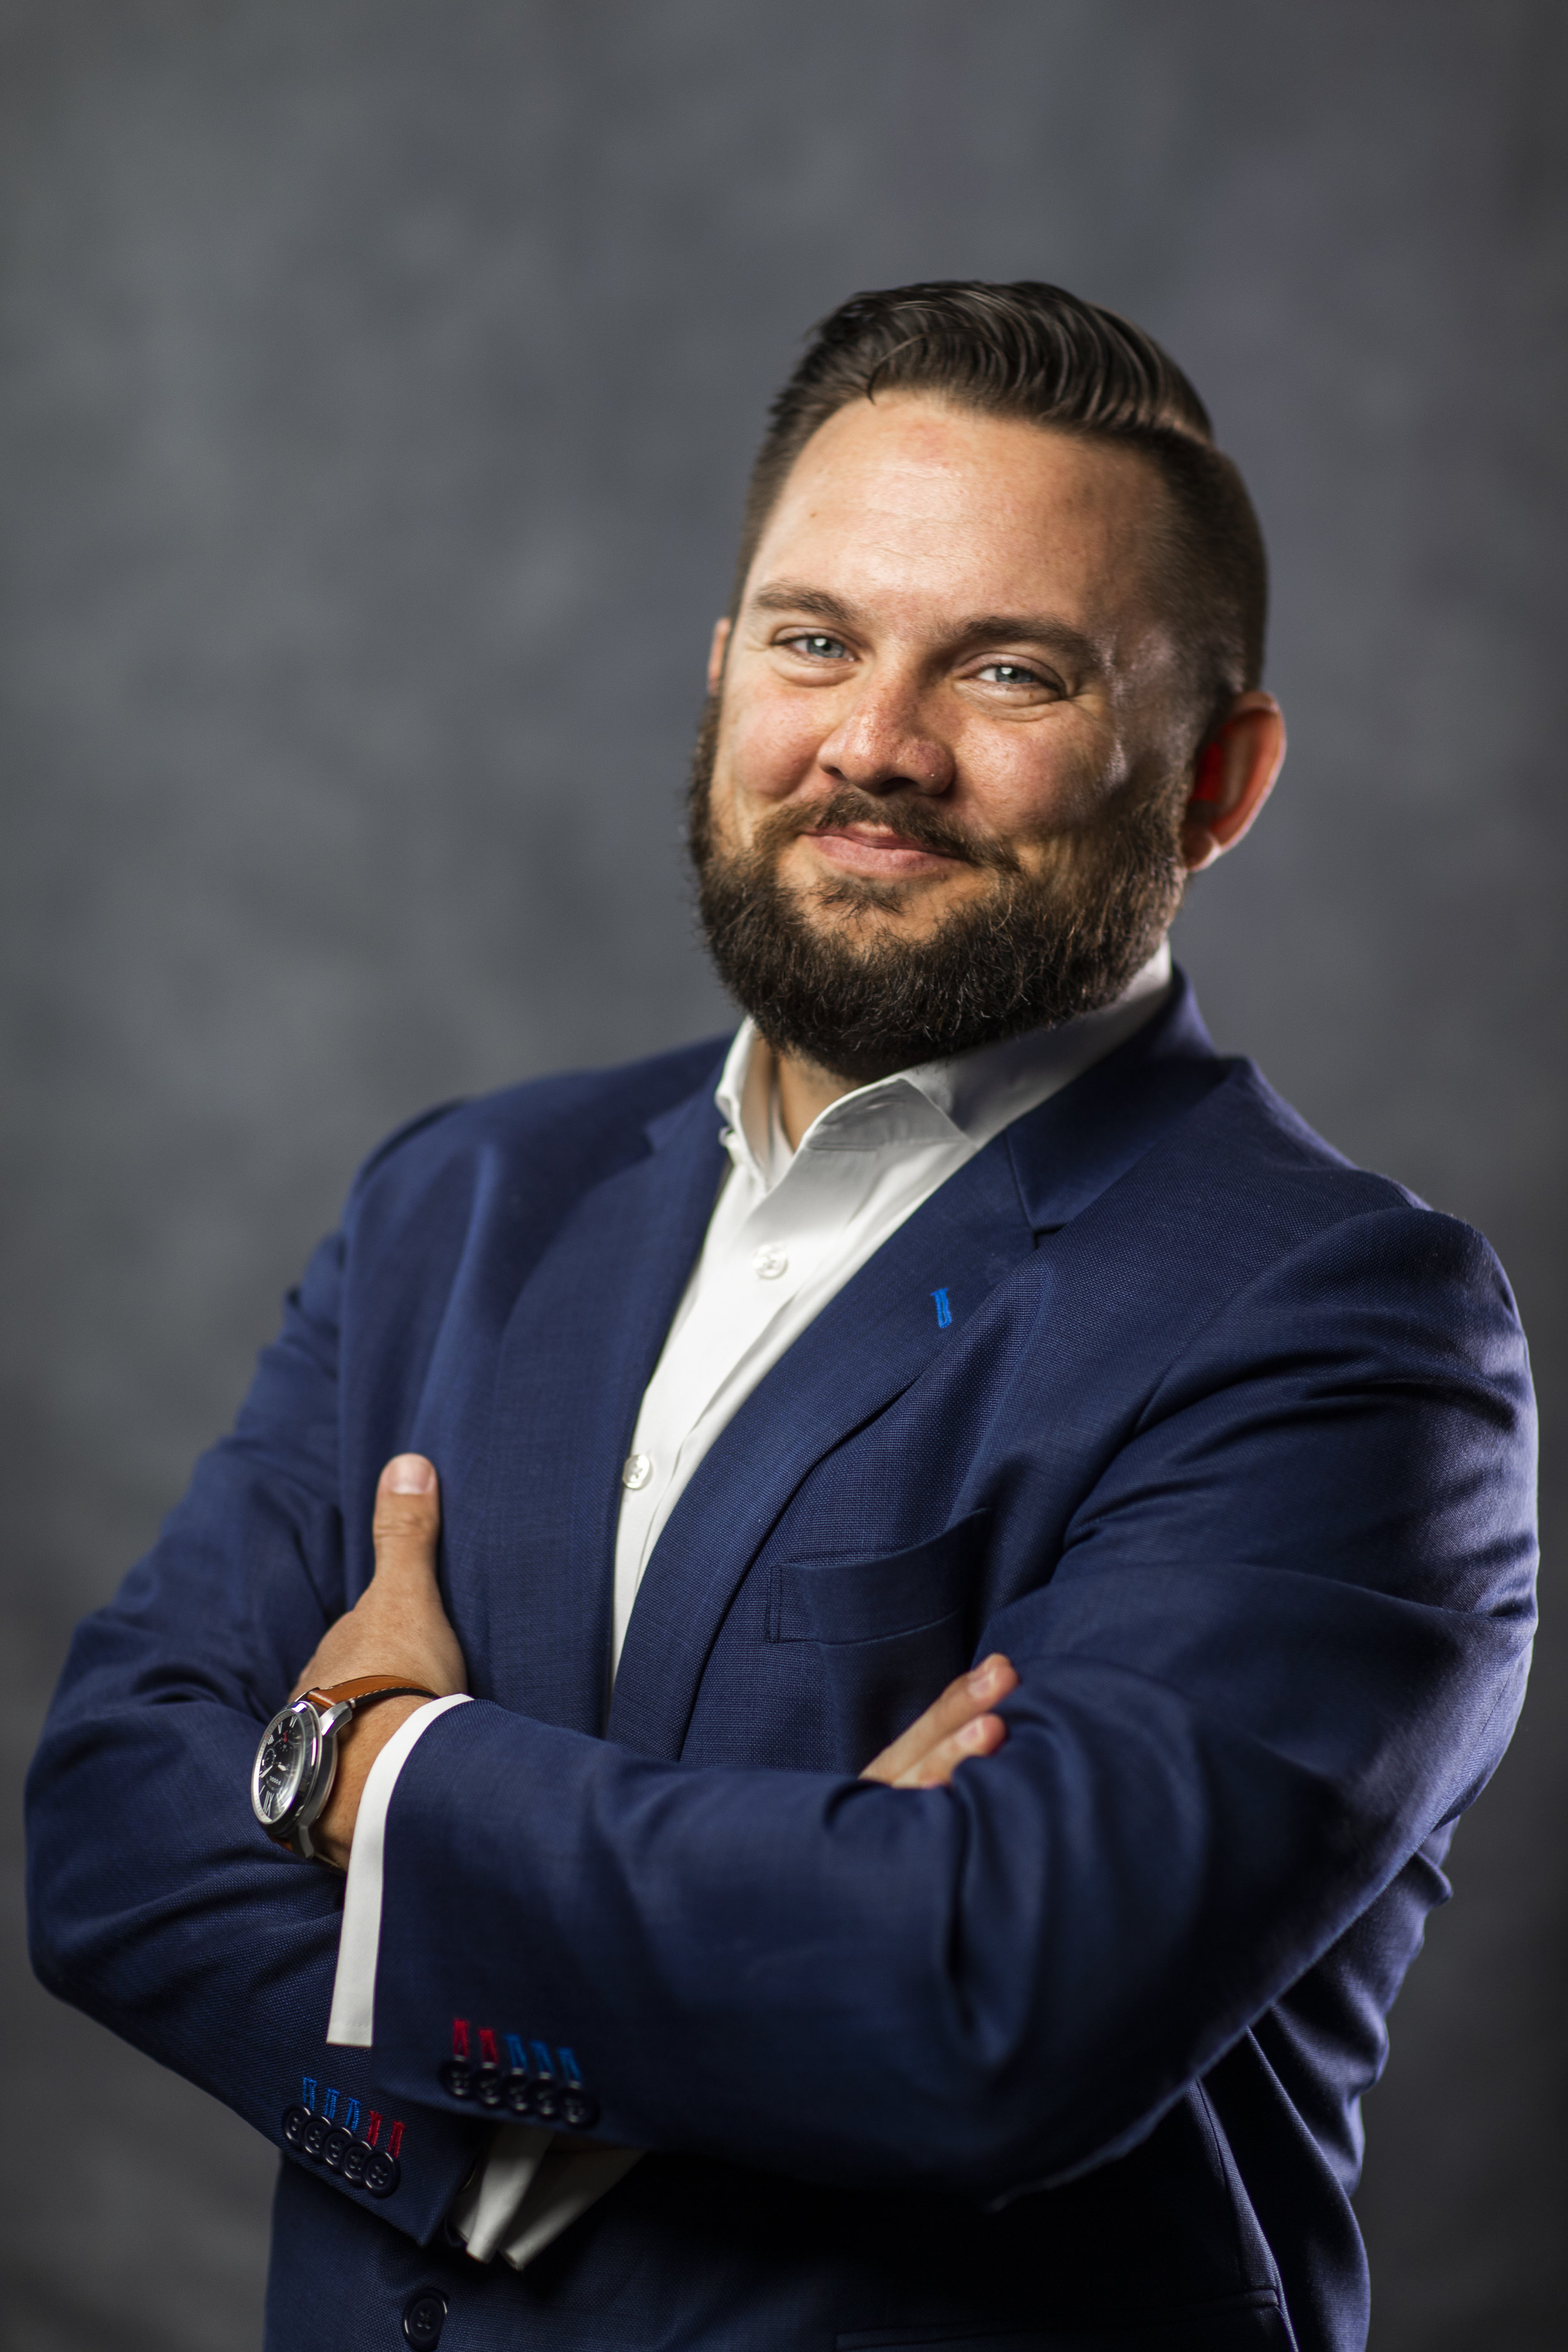 I'm Ben Chappell - I want to be your investment professional